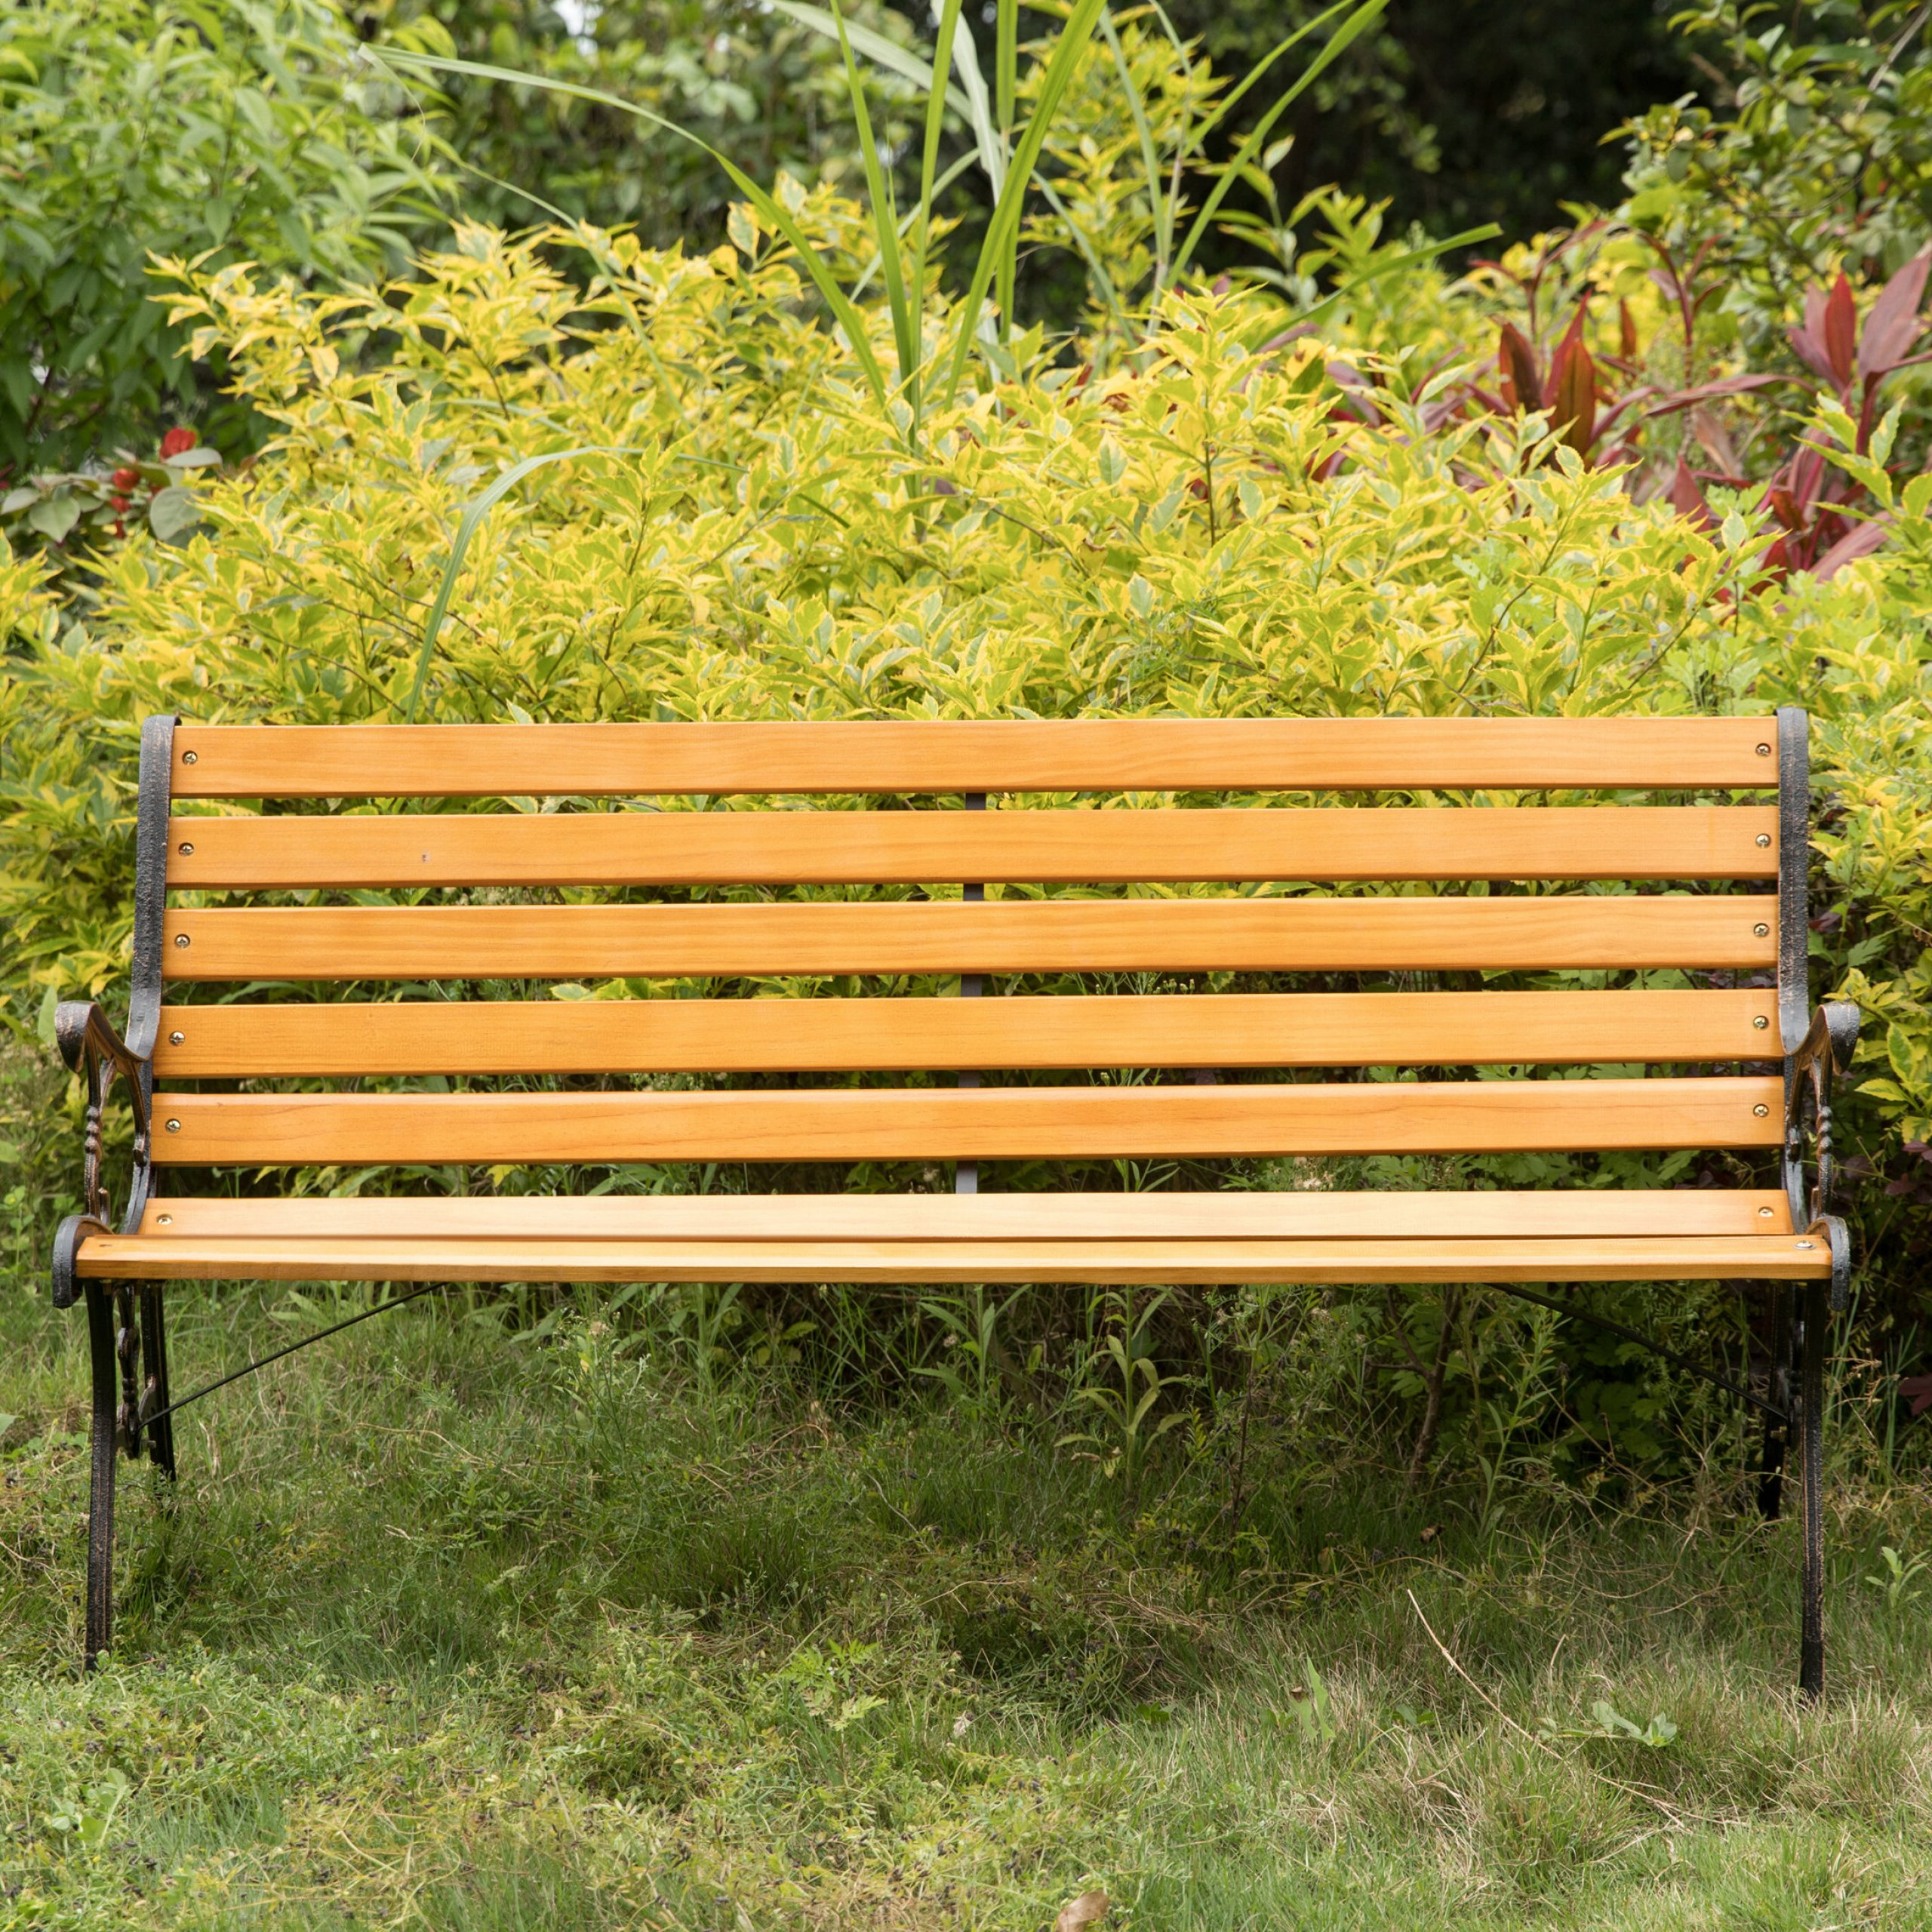 Amett Durable Steel And Solid Wood Park Bench With Regard To Famous Ishan Steel Park Benches (View 10 of 30)